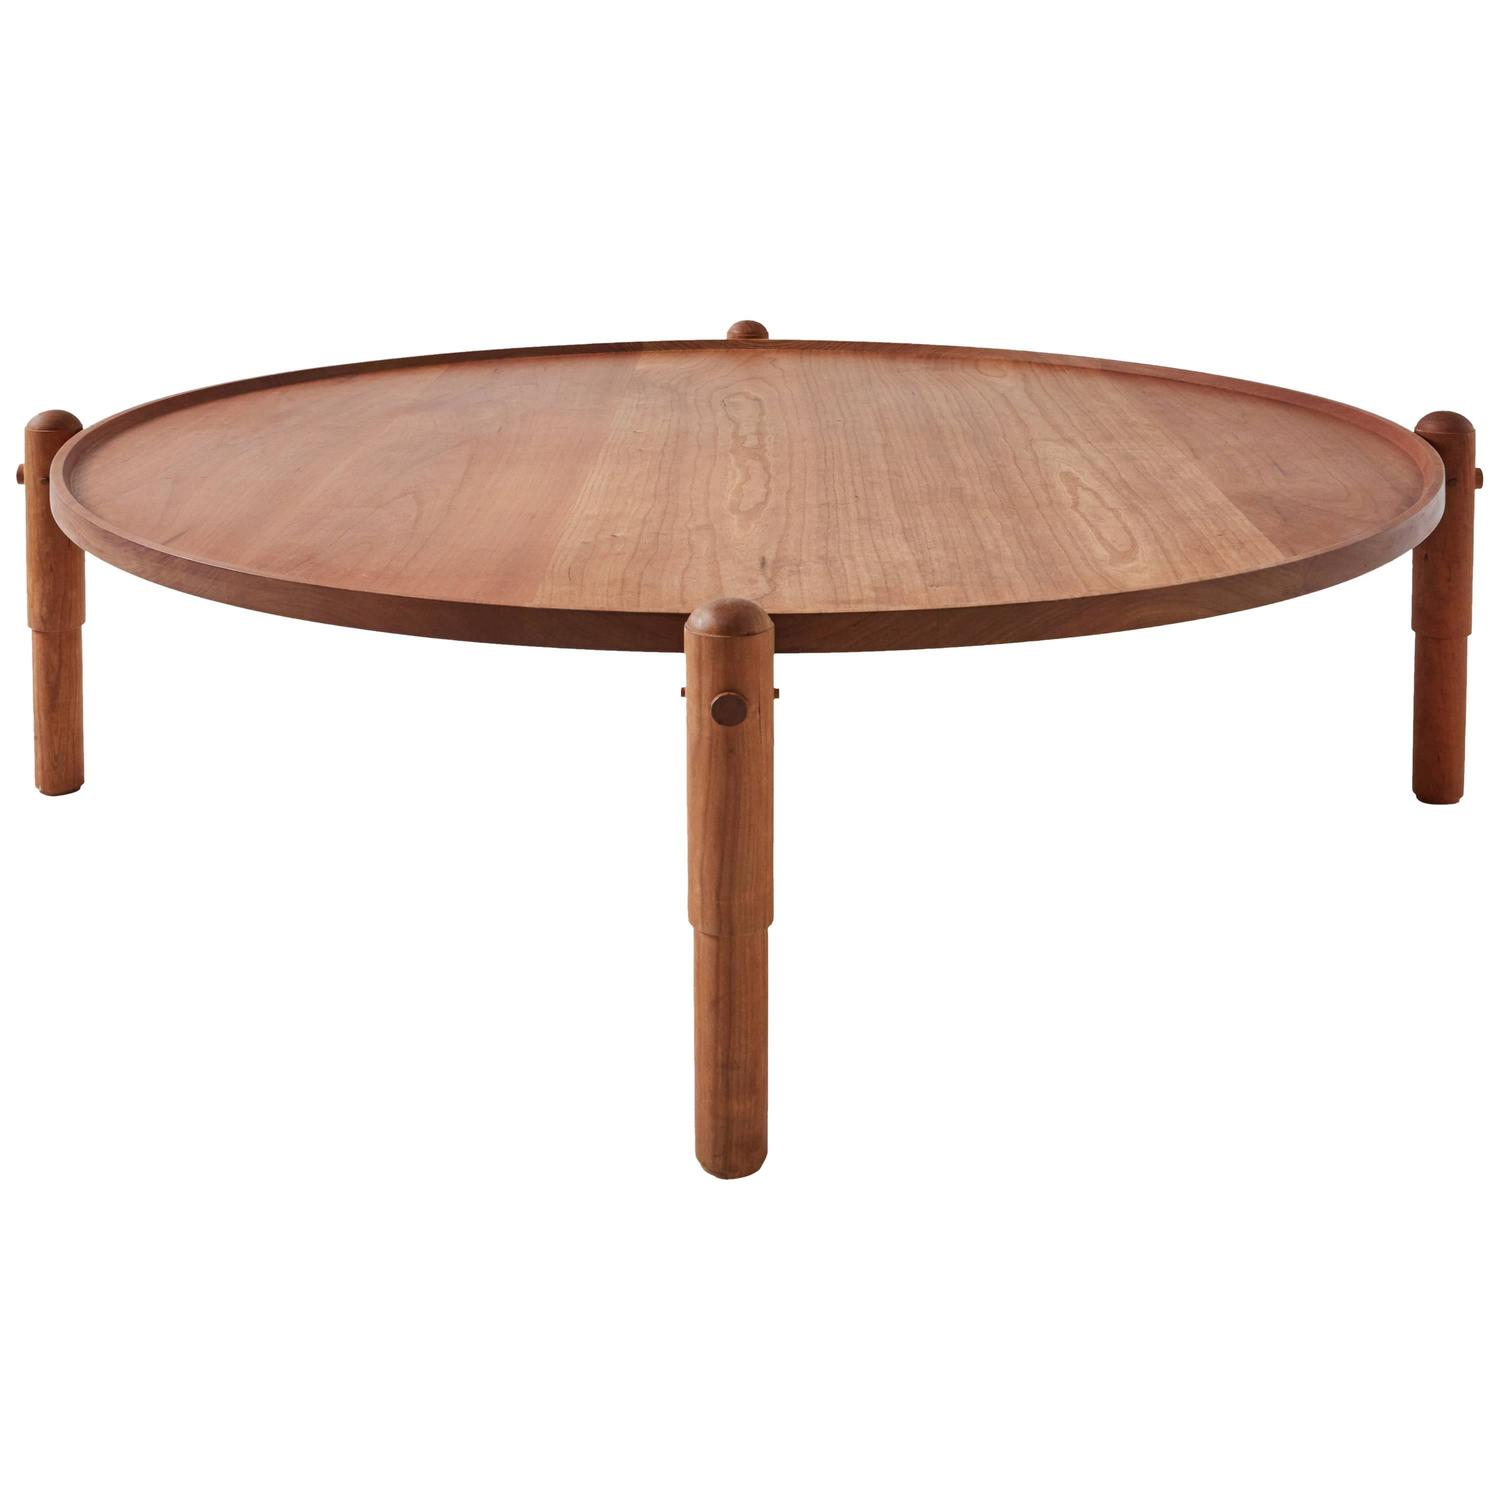 Workstead Coffee Table in Cherry with Turned Wooden Legs and